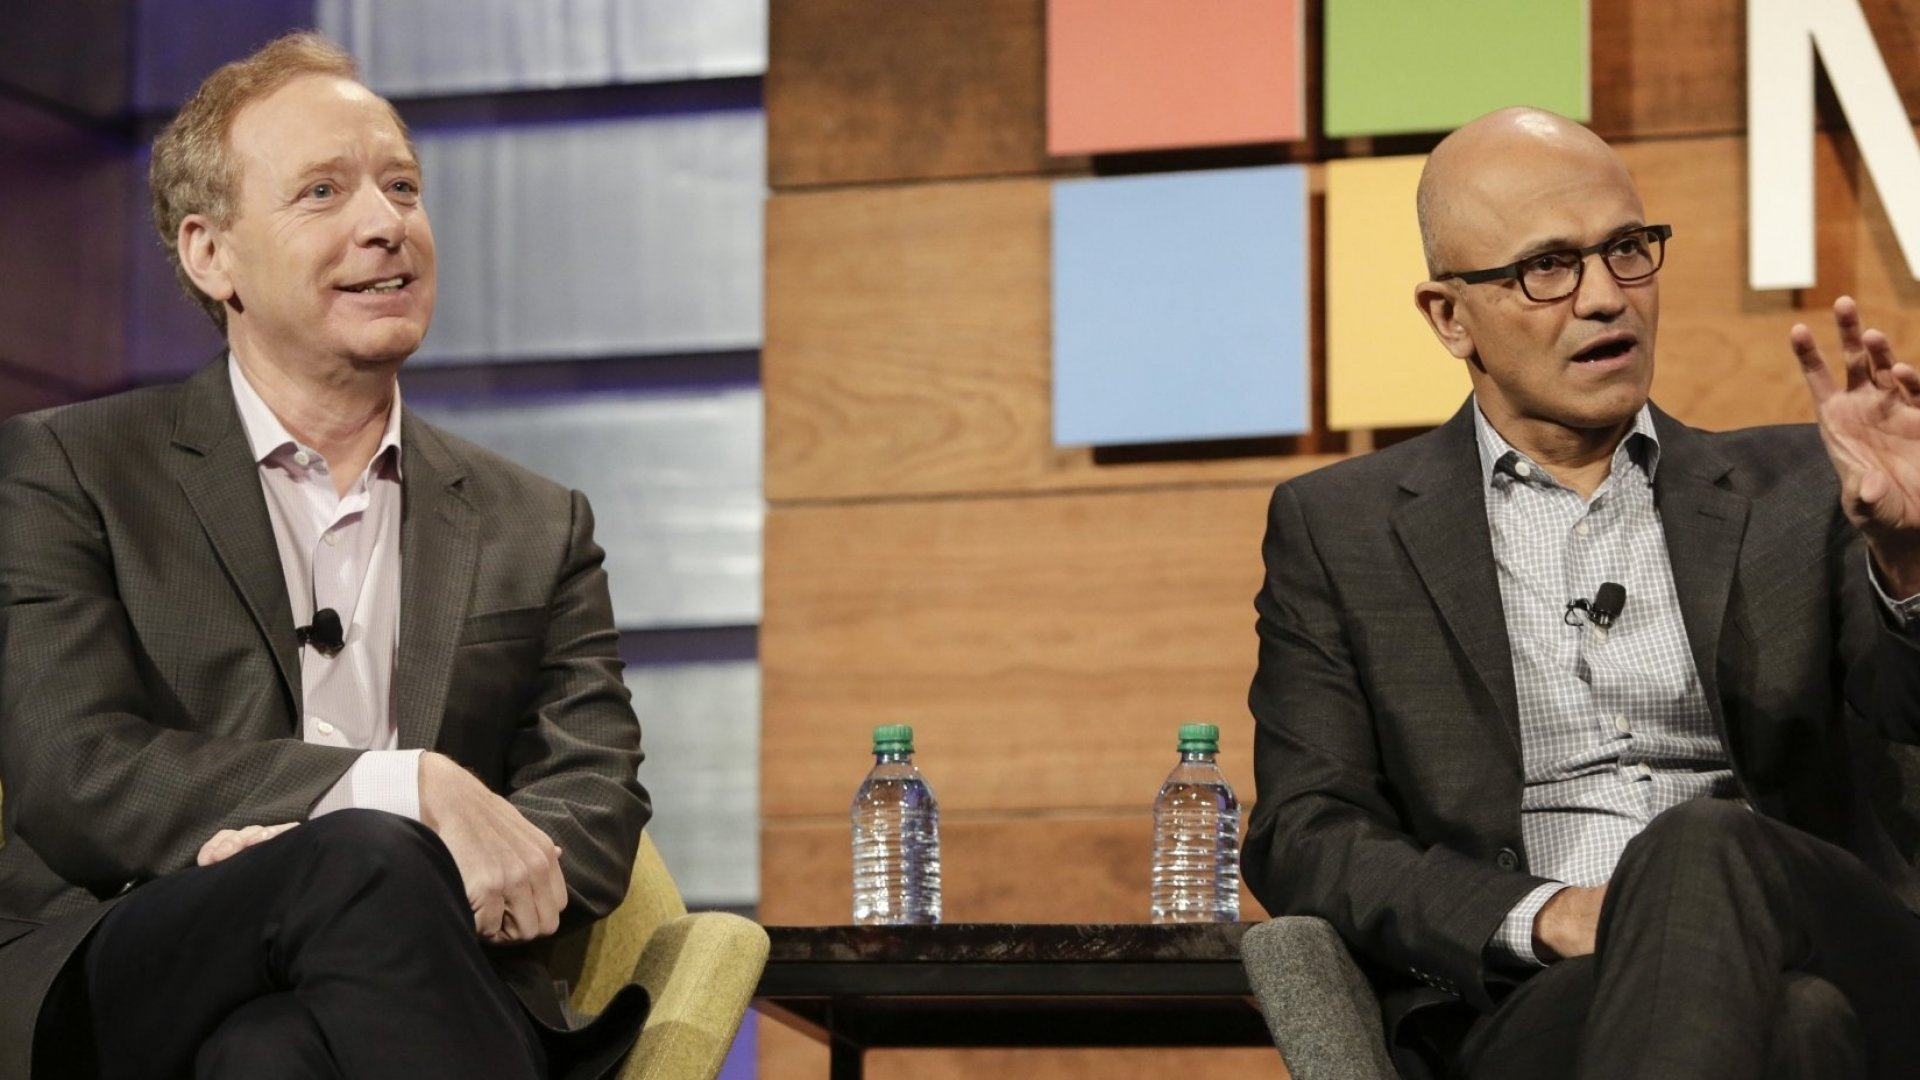 Microsoft President Brad Smith (L) with CEO Satya Nadella